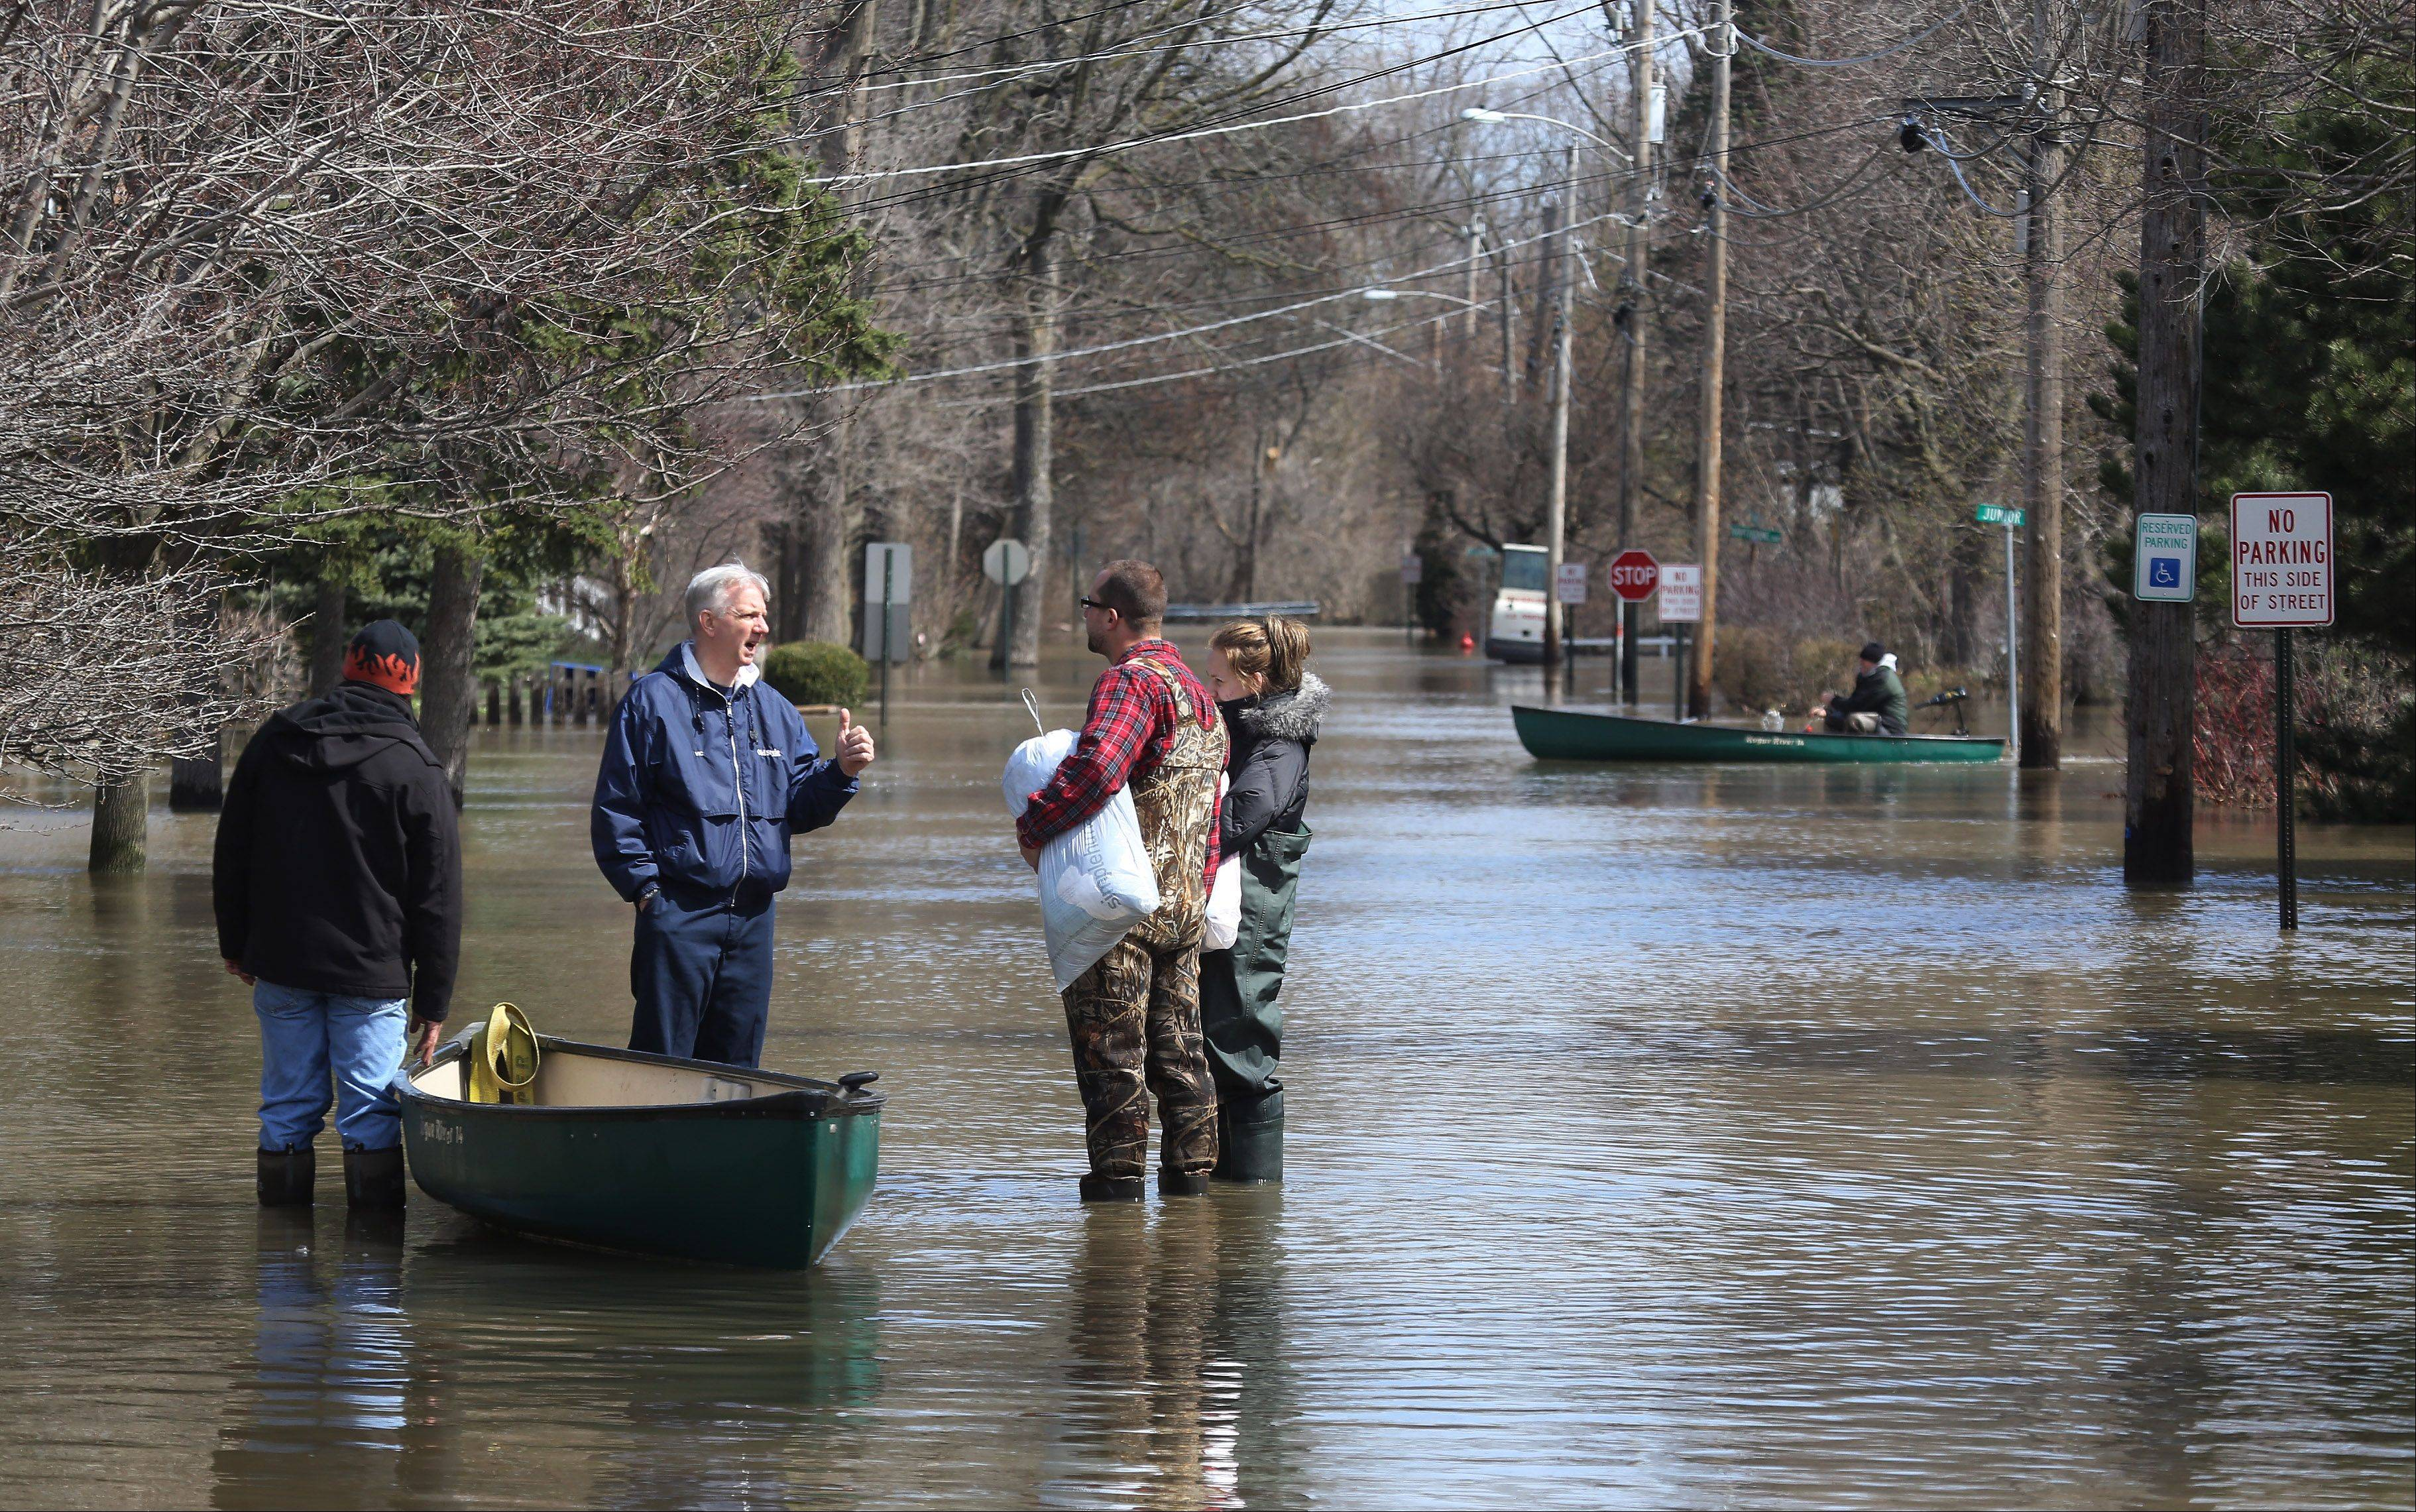 Des Plaines updates residents on flooding